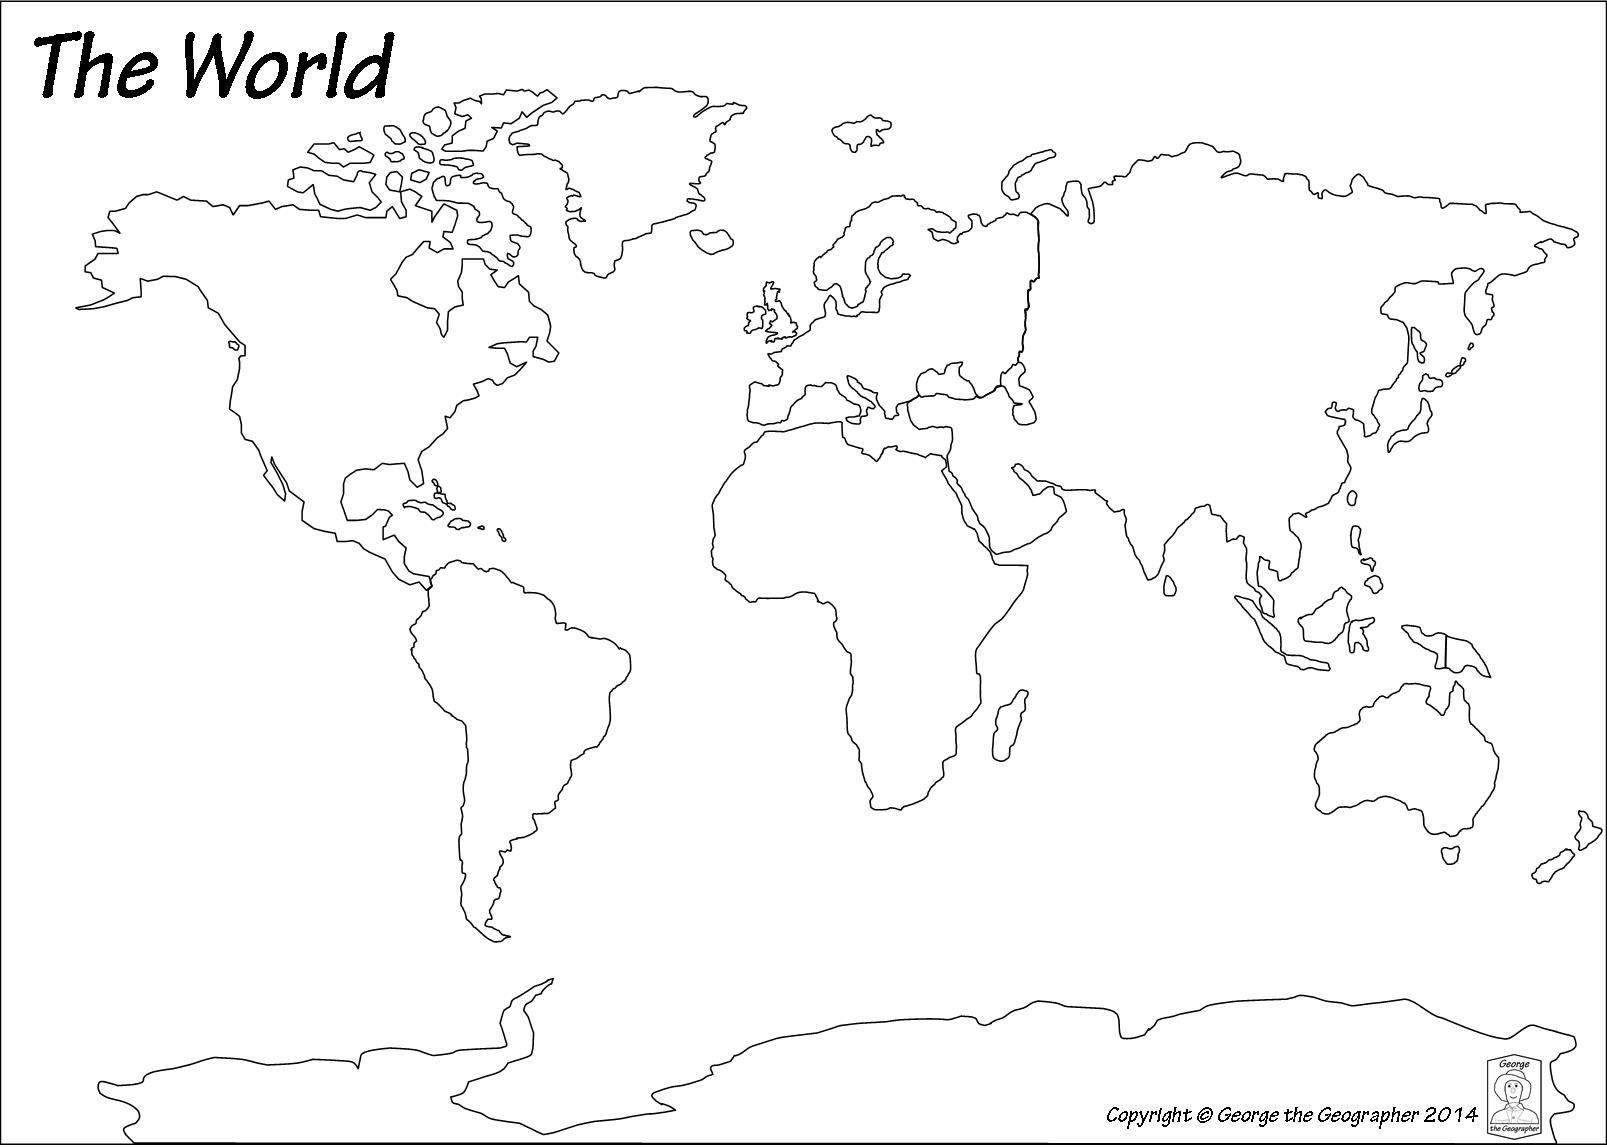 Blank World Map Pdf Blank World Map Pdf #3 | ART Class | Blank world map, True world